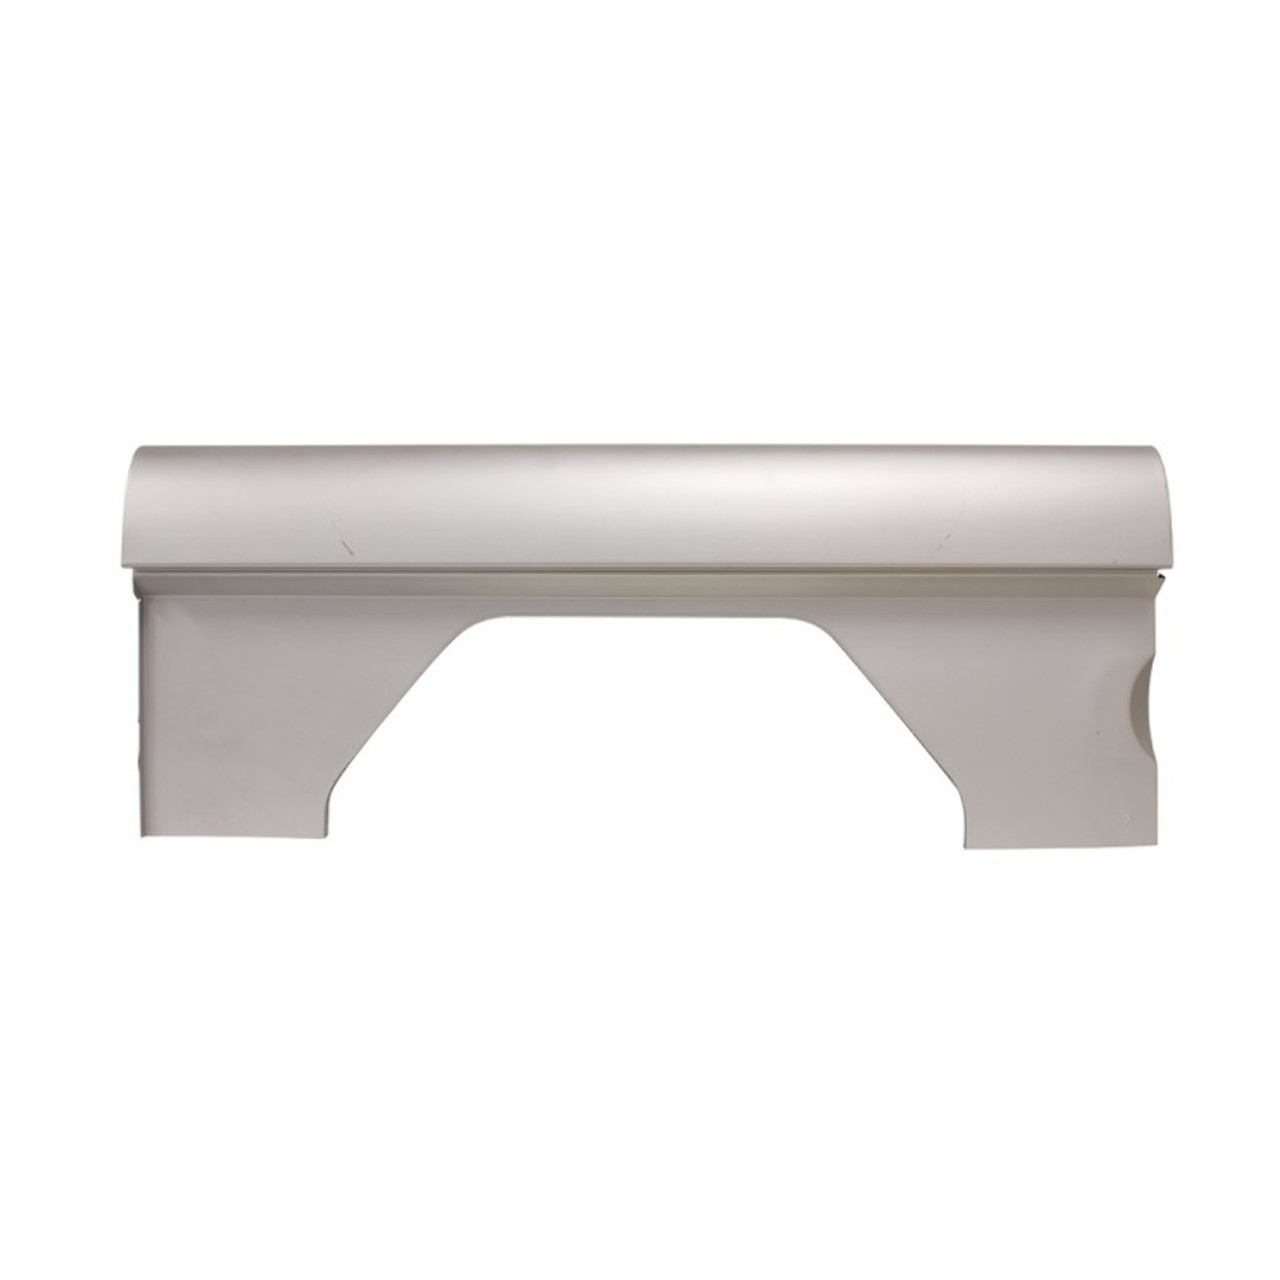 1966-77 Ford Bronco Bed/Inner Quarter Panel, R/H, Coated In Weldable Primer